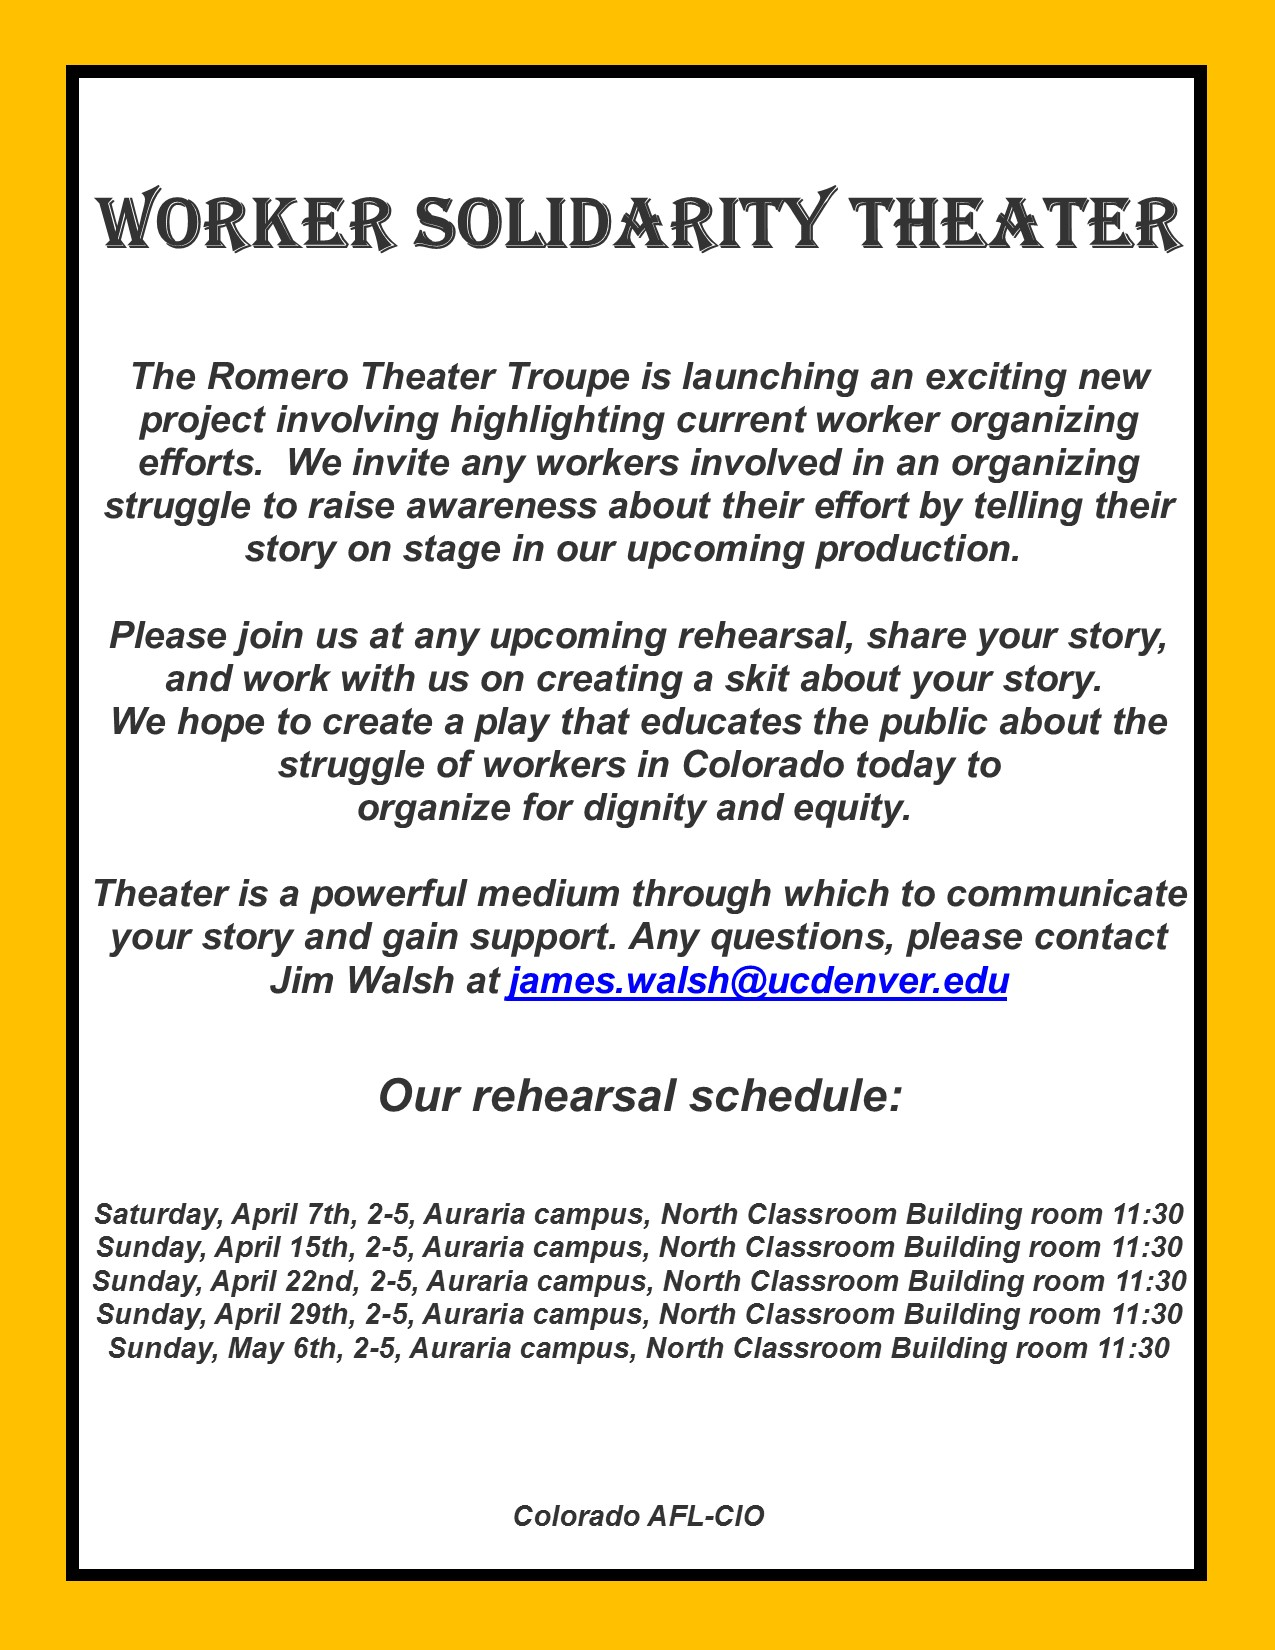 Worker Solidarity Theater